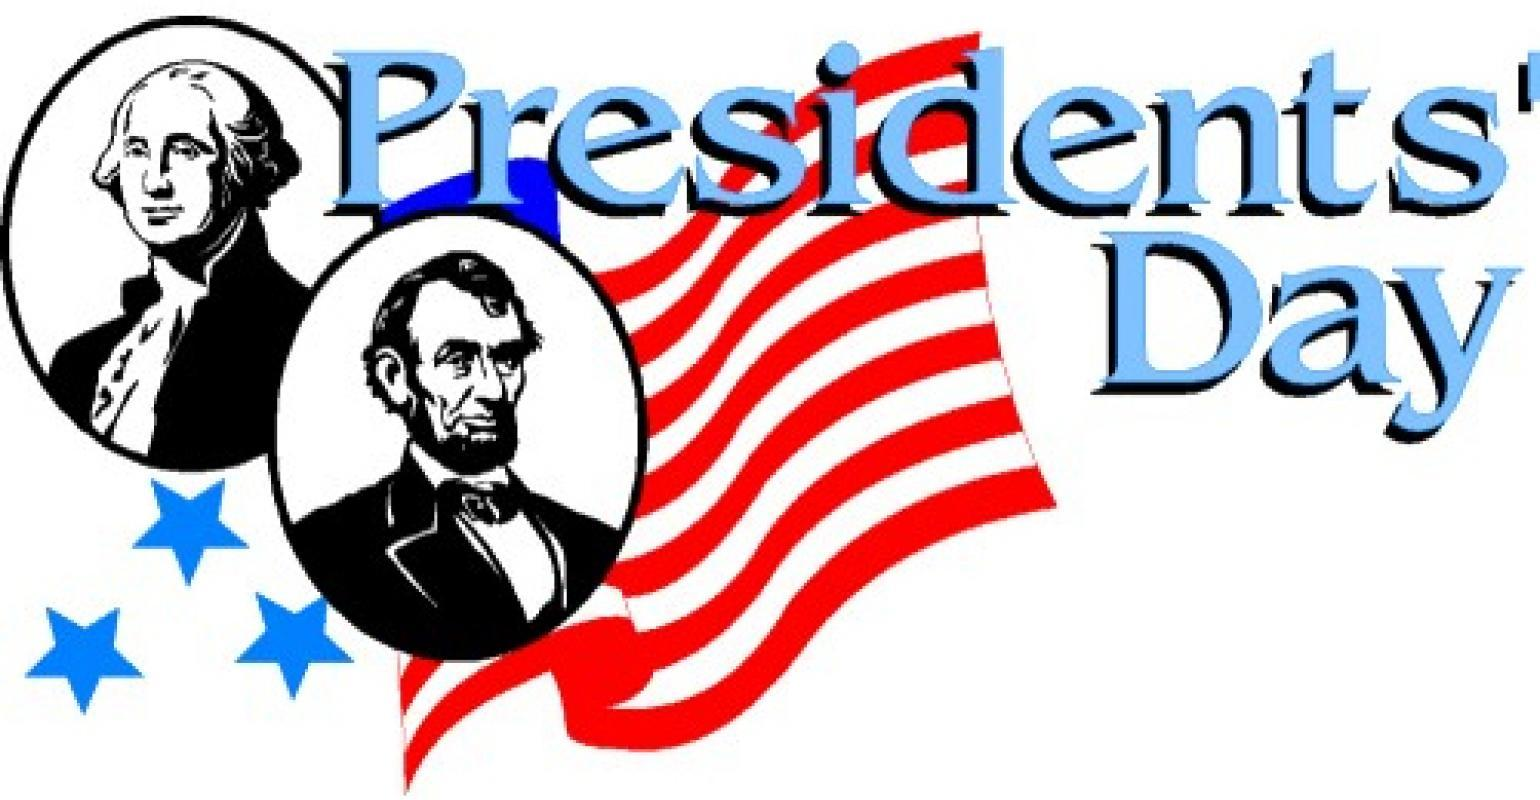 Transparent Transparent Backgrounds Presidents Day Clipart